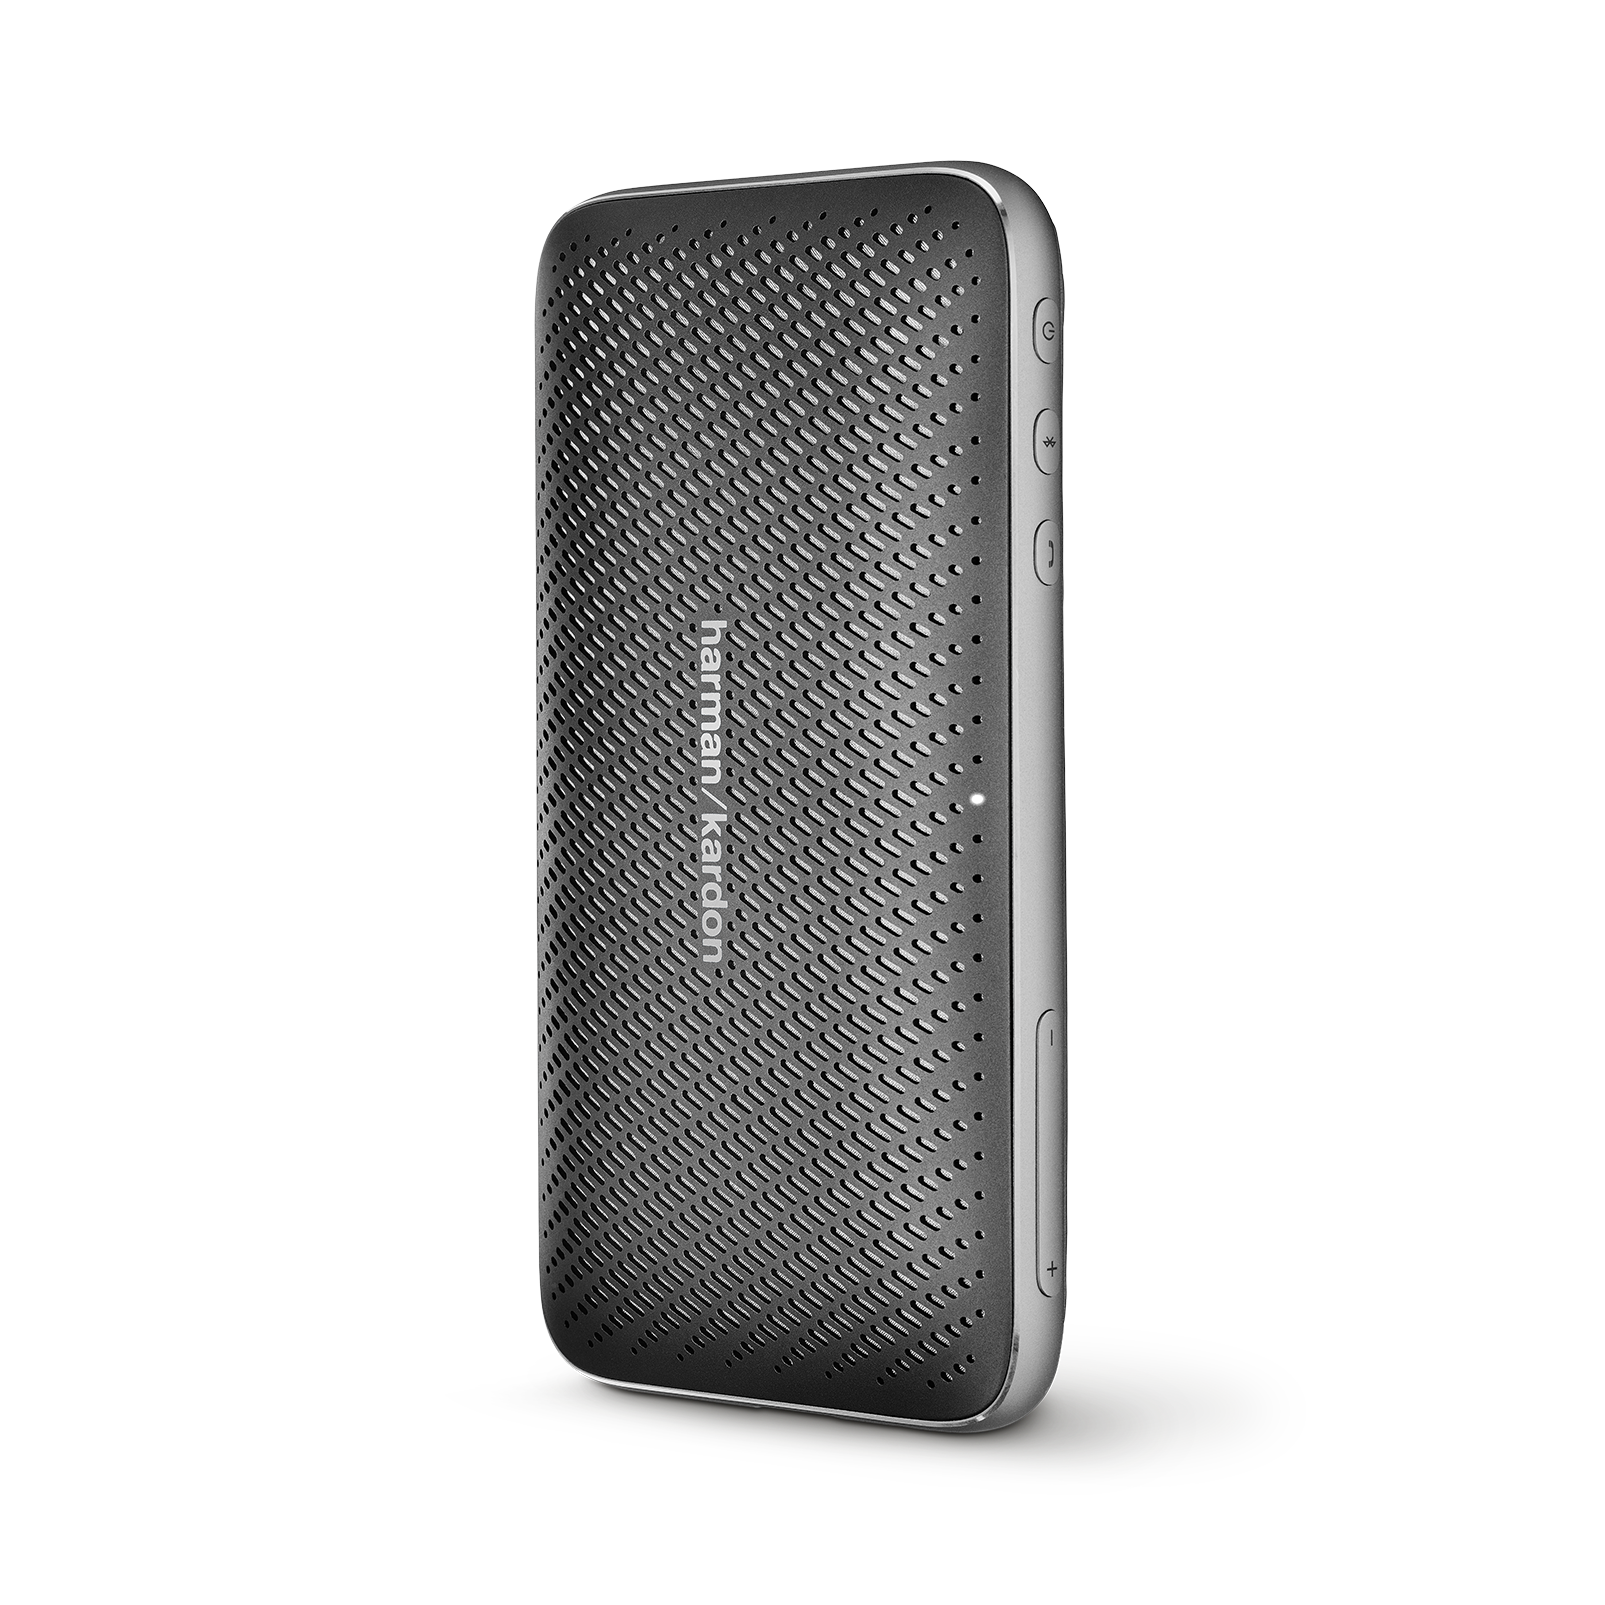 Harman Kardon Esquire Mini 2 - Black - Ultra-slim and portable premium Bluetooth Speaker - Detailshot 2